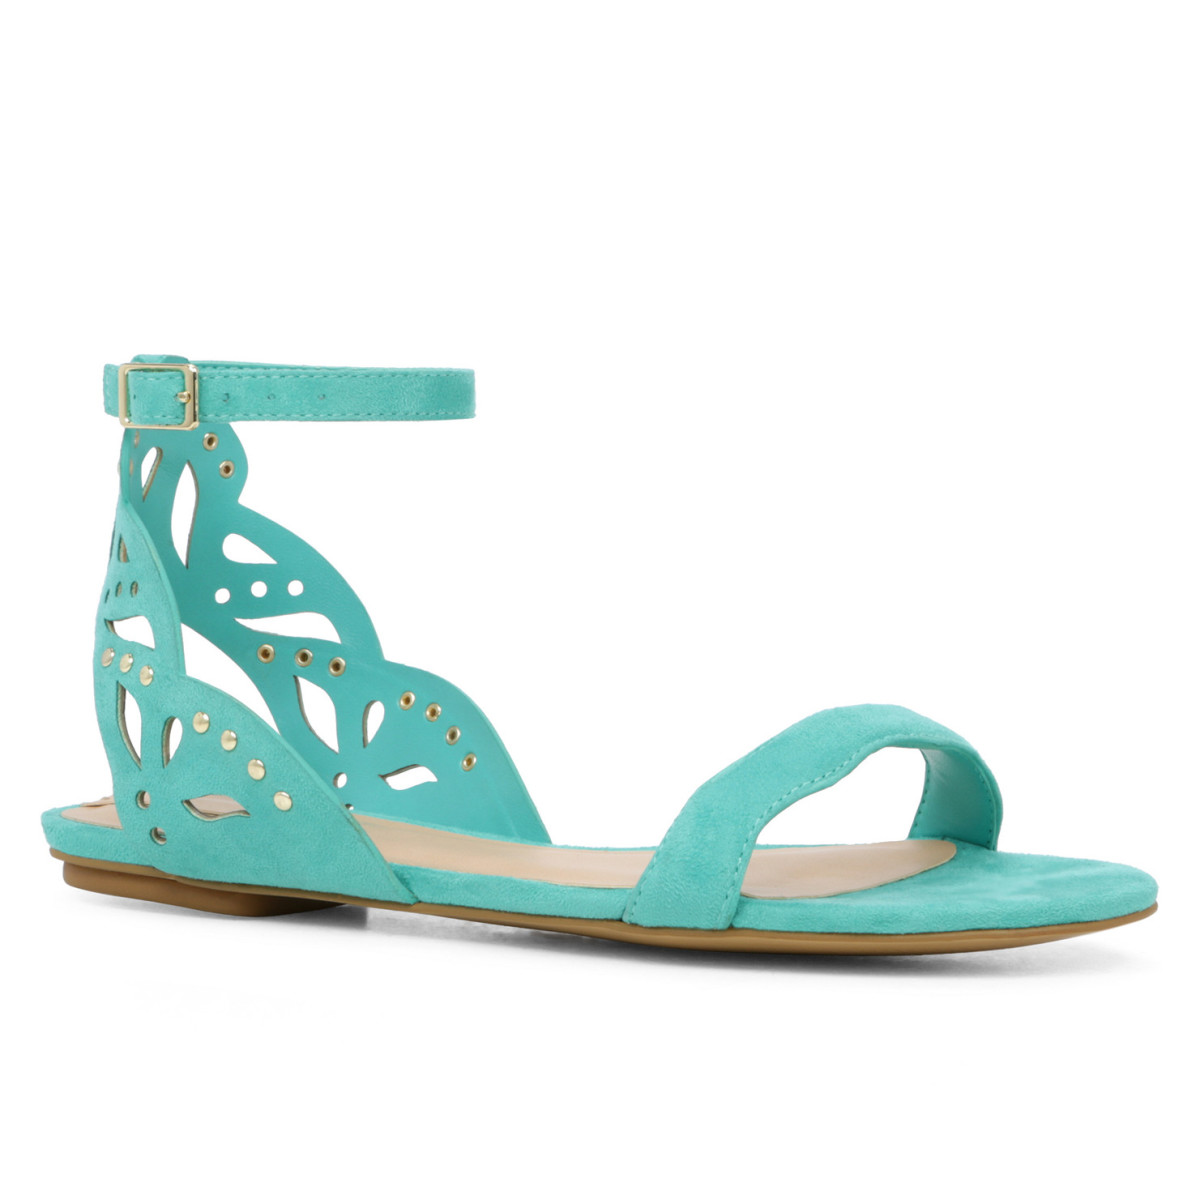 Aldo gift card giveaway_LILLYWHITE flat sandal